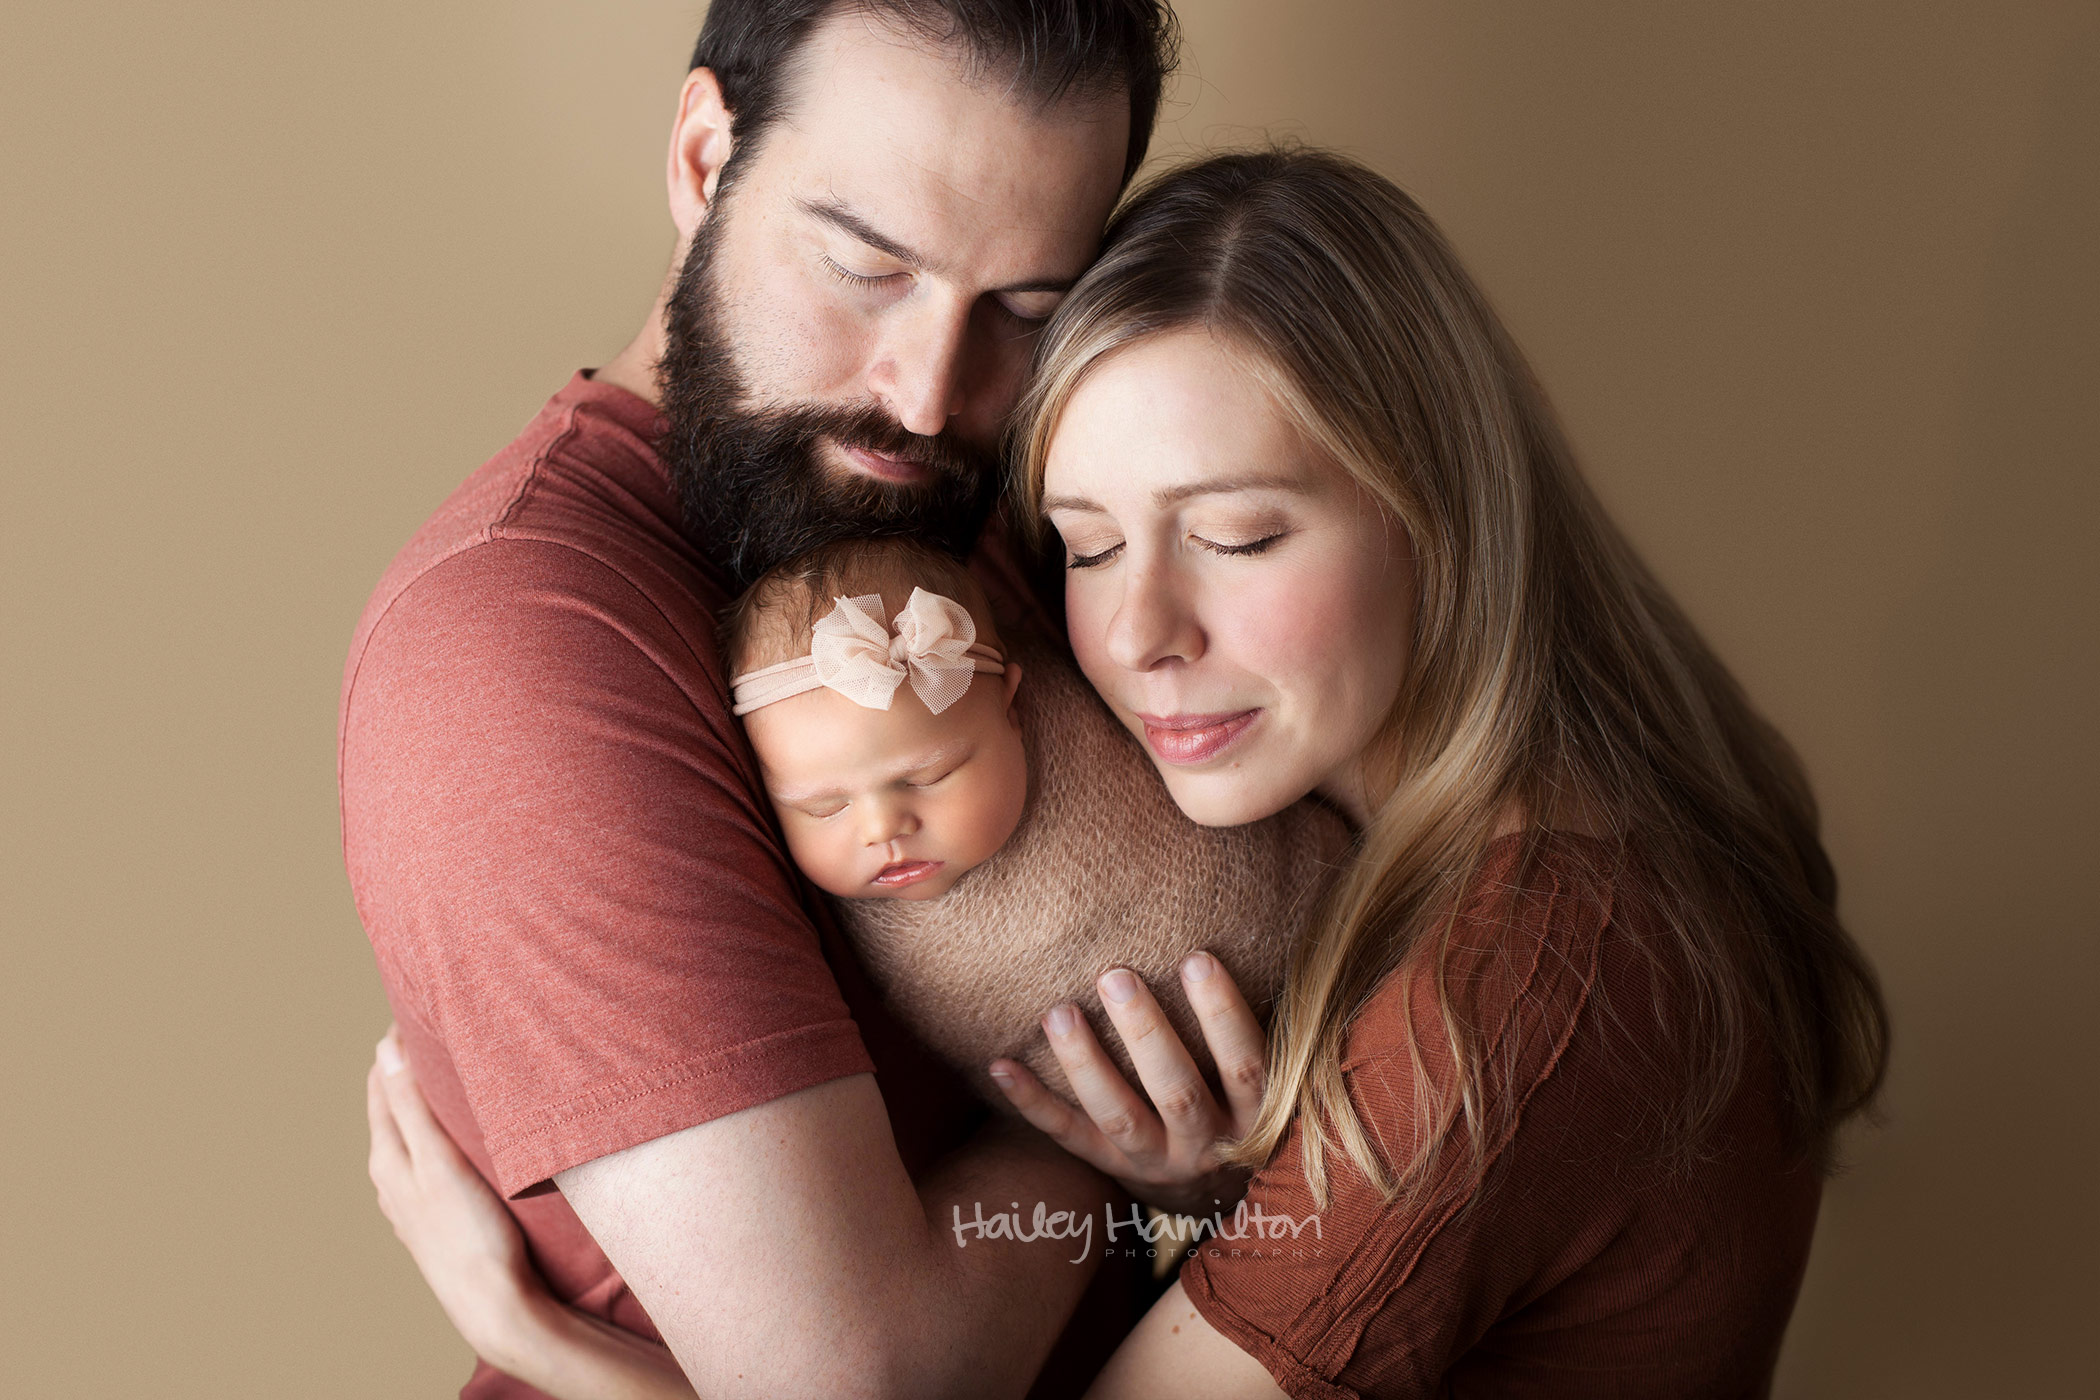 New Parents With Newborn Baby Girl in Fall Tones